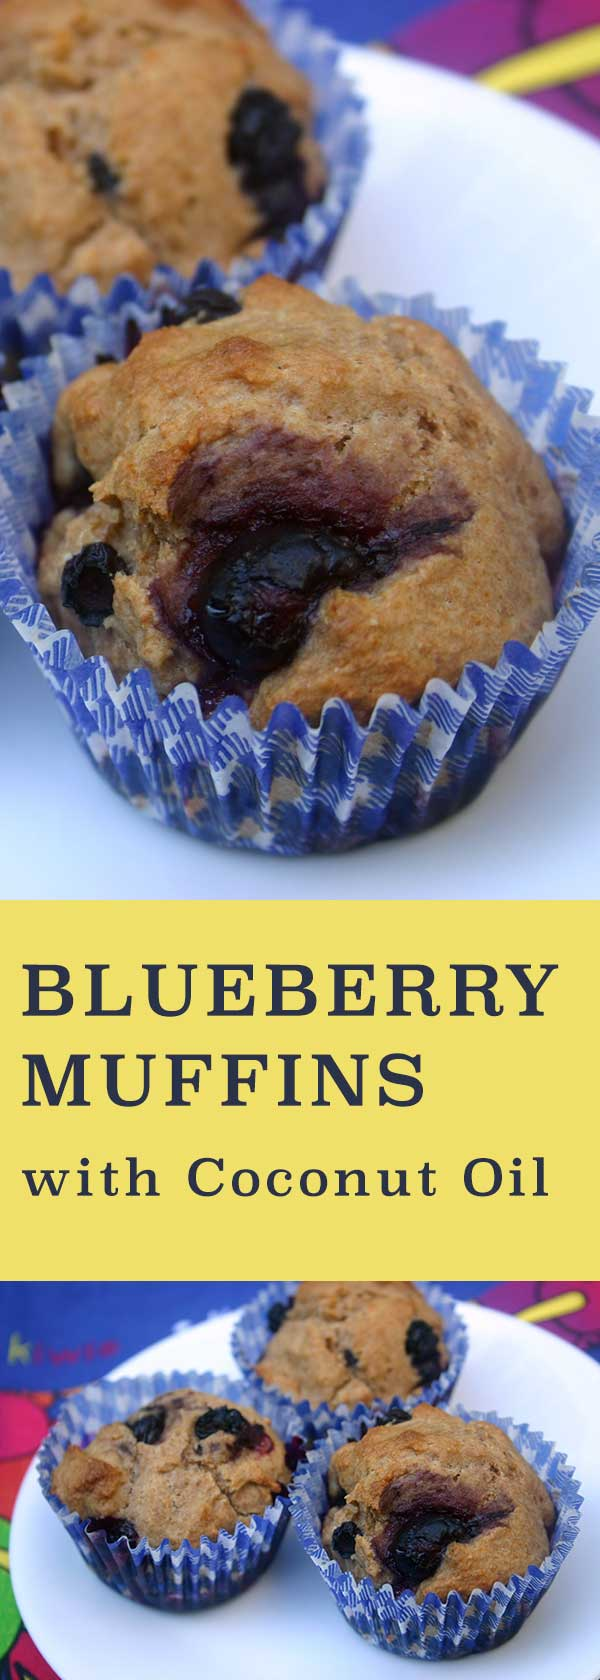 Whole Wheat Blueberry Muffins with Coconut Oil |diabeticfoodie.com